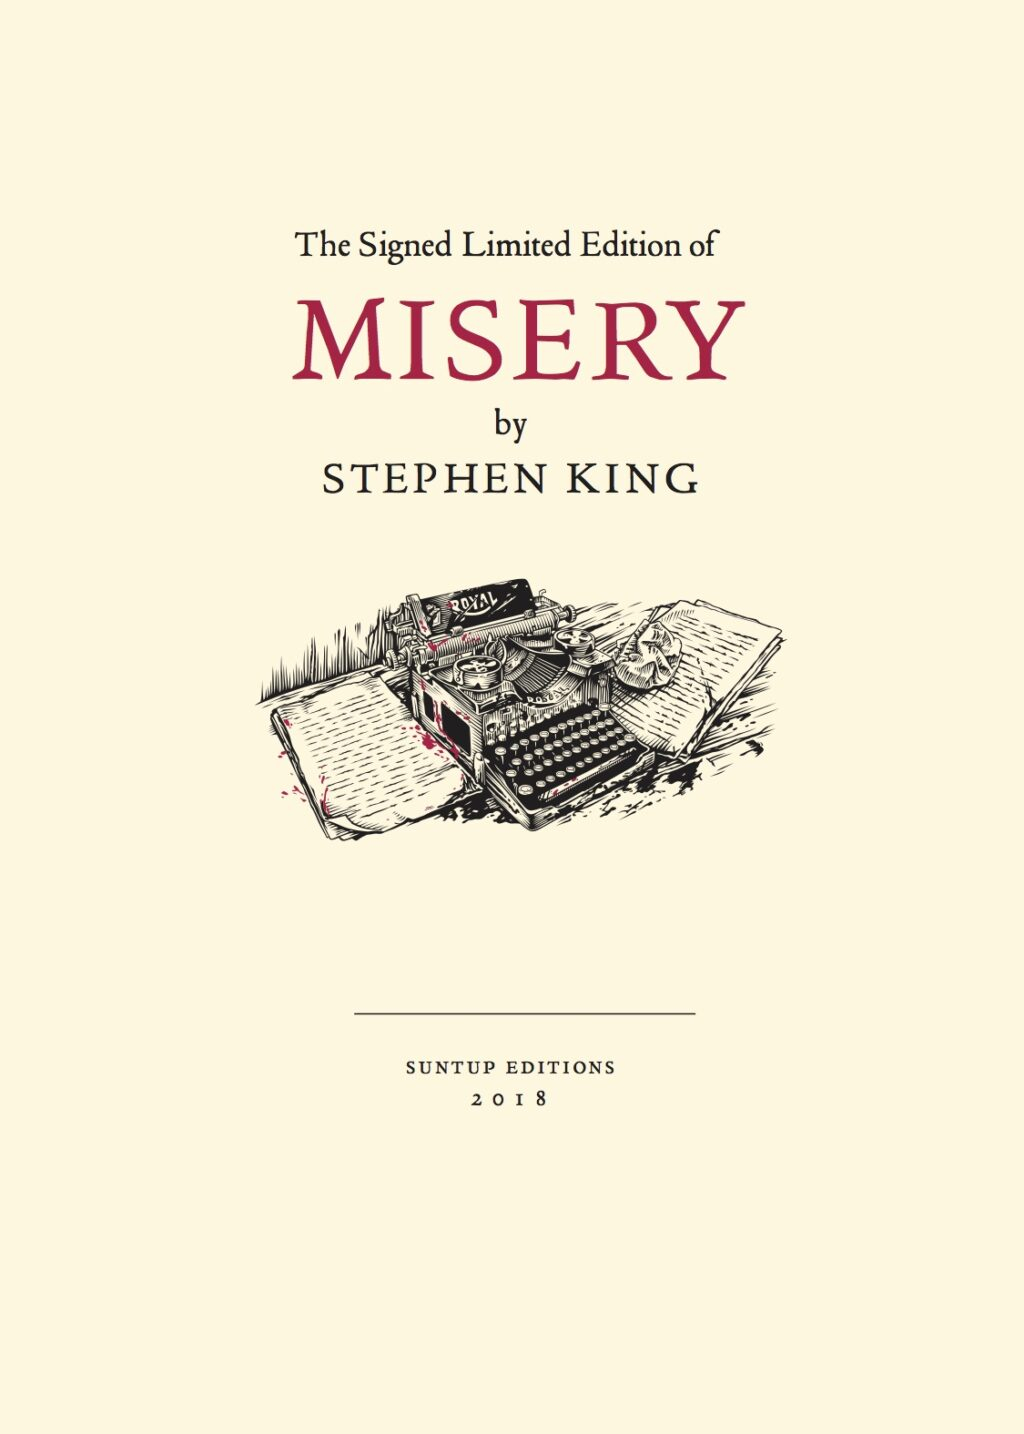 Suntup Misery Prospectus1 1024x1434 - Gorgeous Highly Limited Edition Signed Copies of Stephen King's Misery Coming This Summer